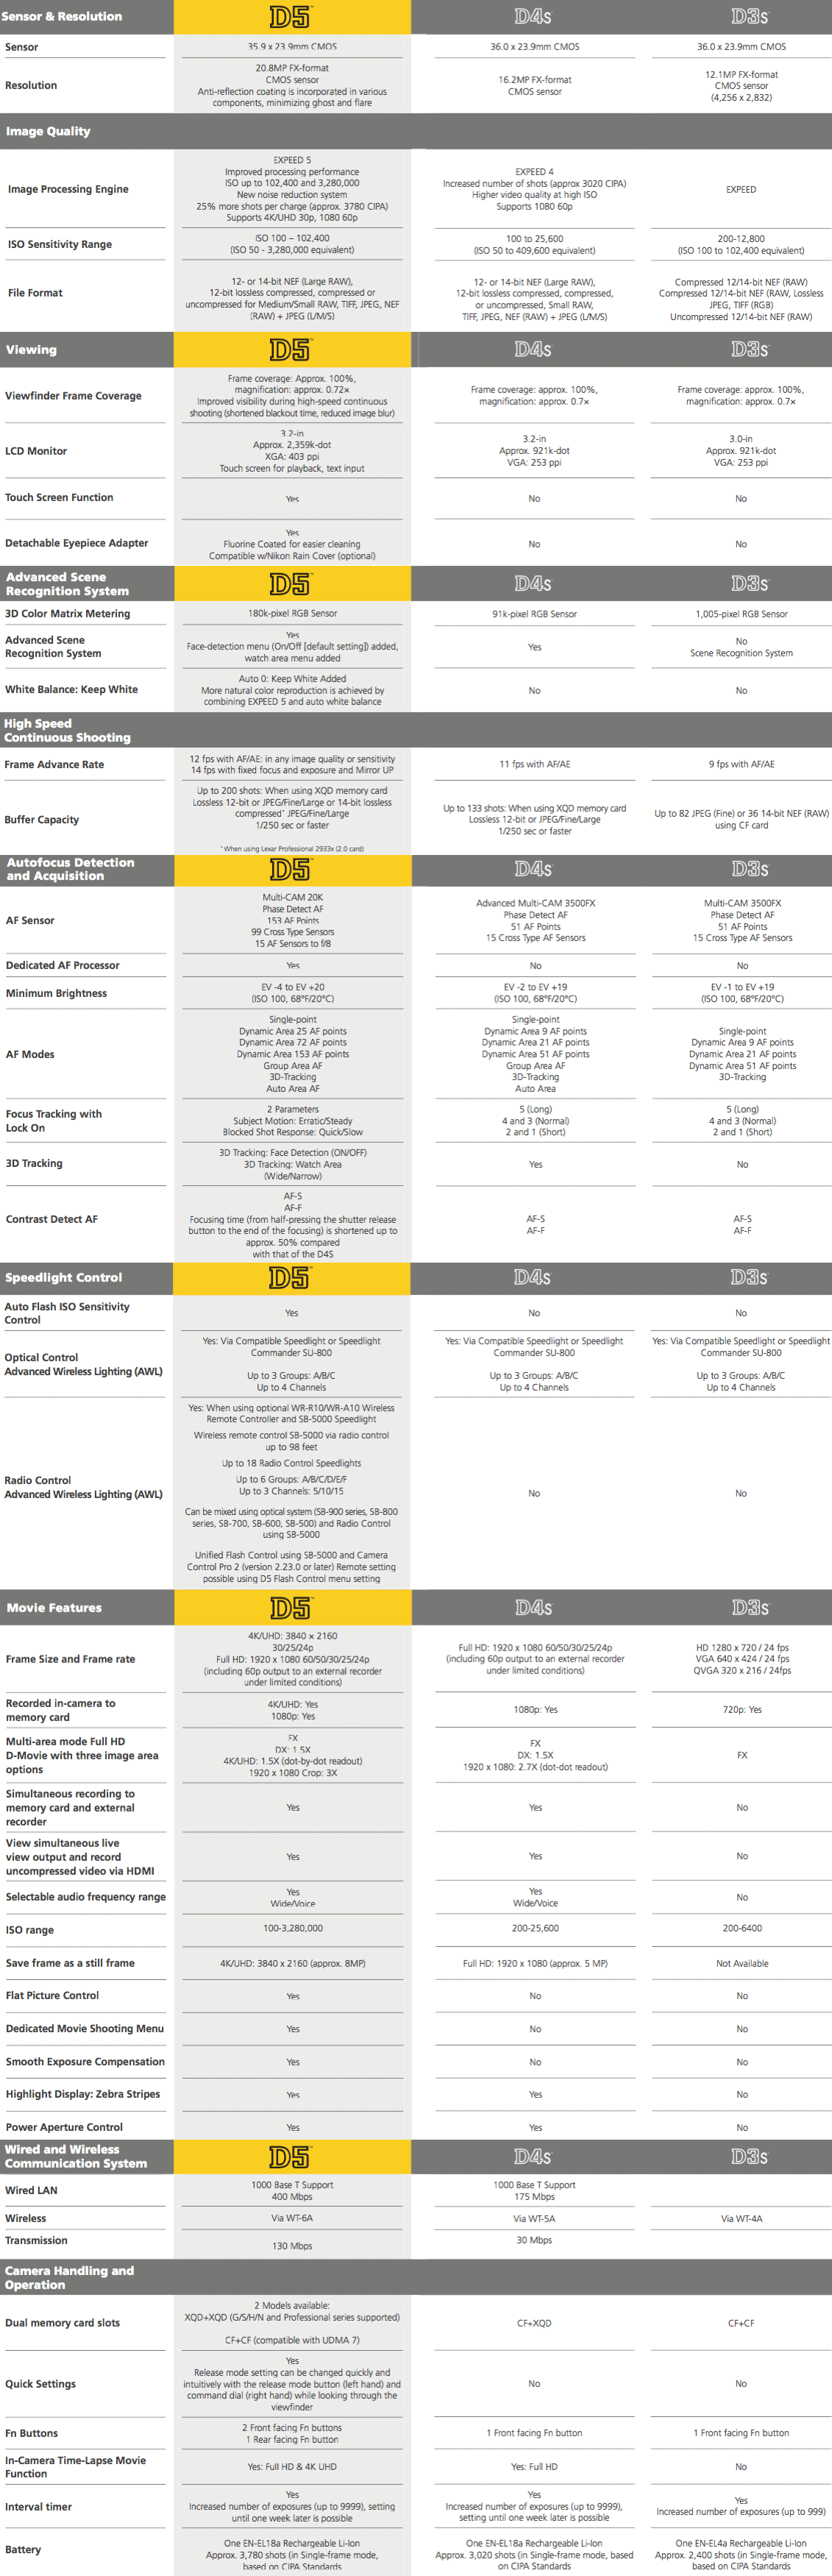 Nikon-D5-vs.-D4s-vs.-D3s-specifications-comparison-table